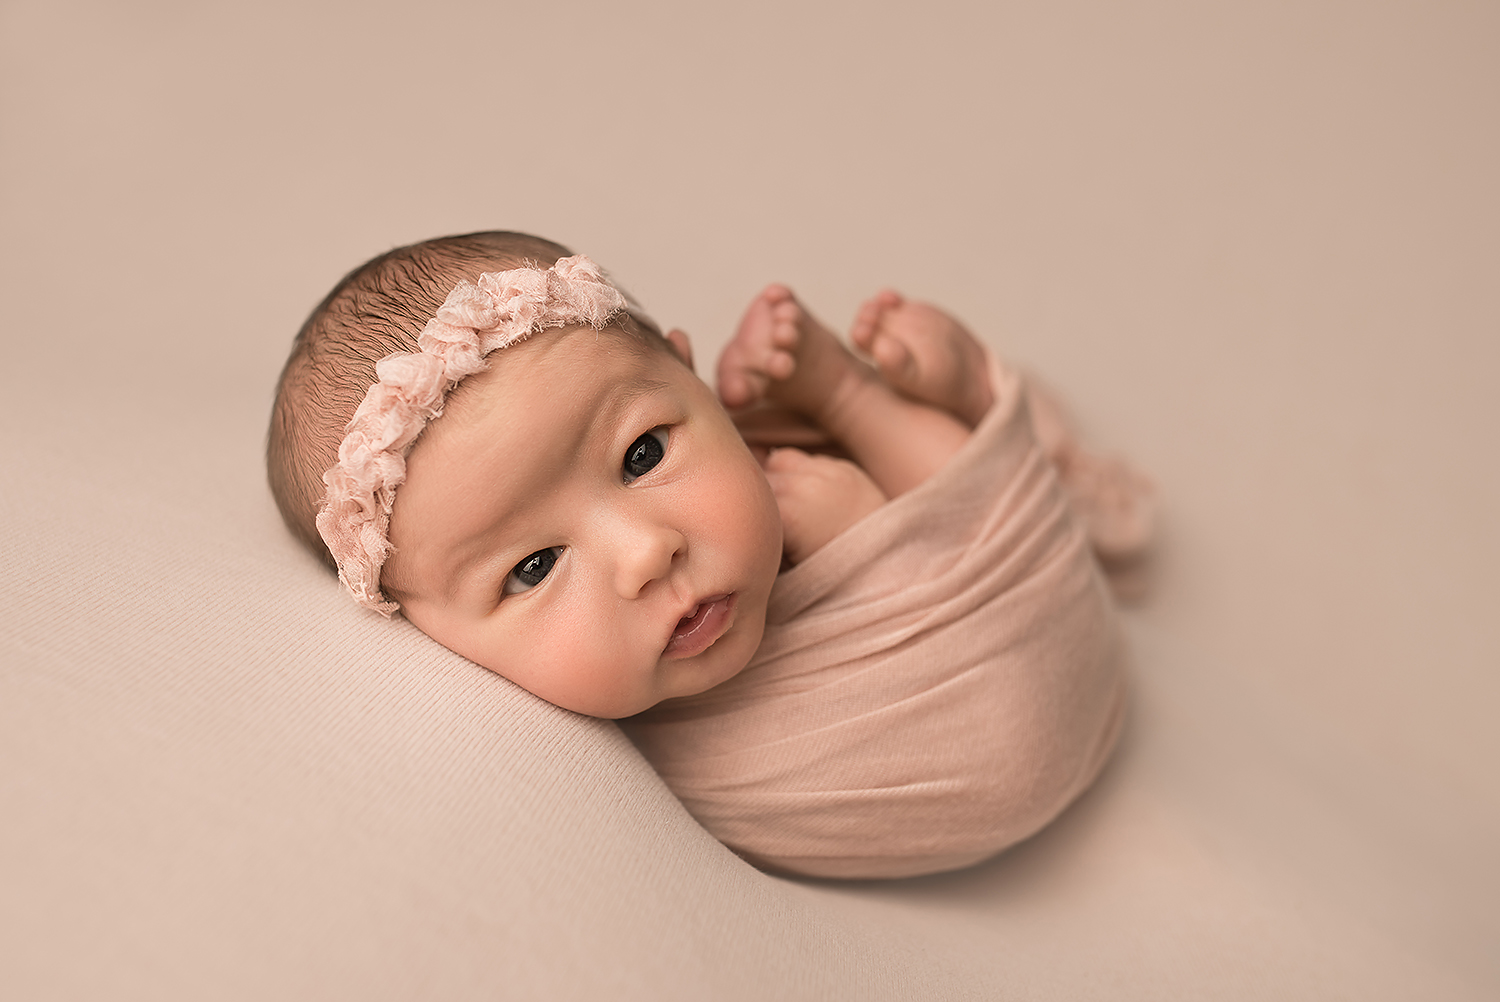 Baltimore Howard County Maryland Newborn Photographer Jessica Fenfert awake baby girl